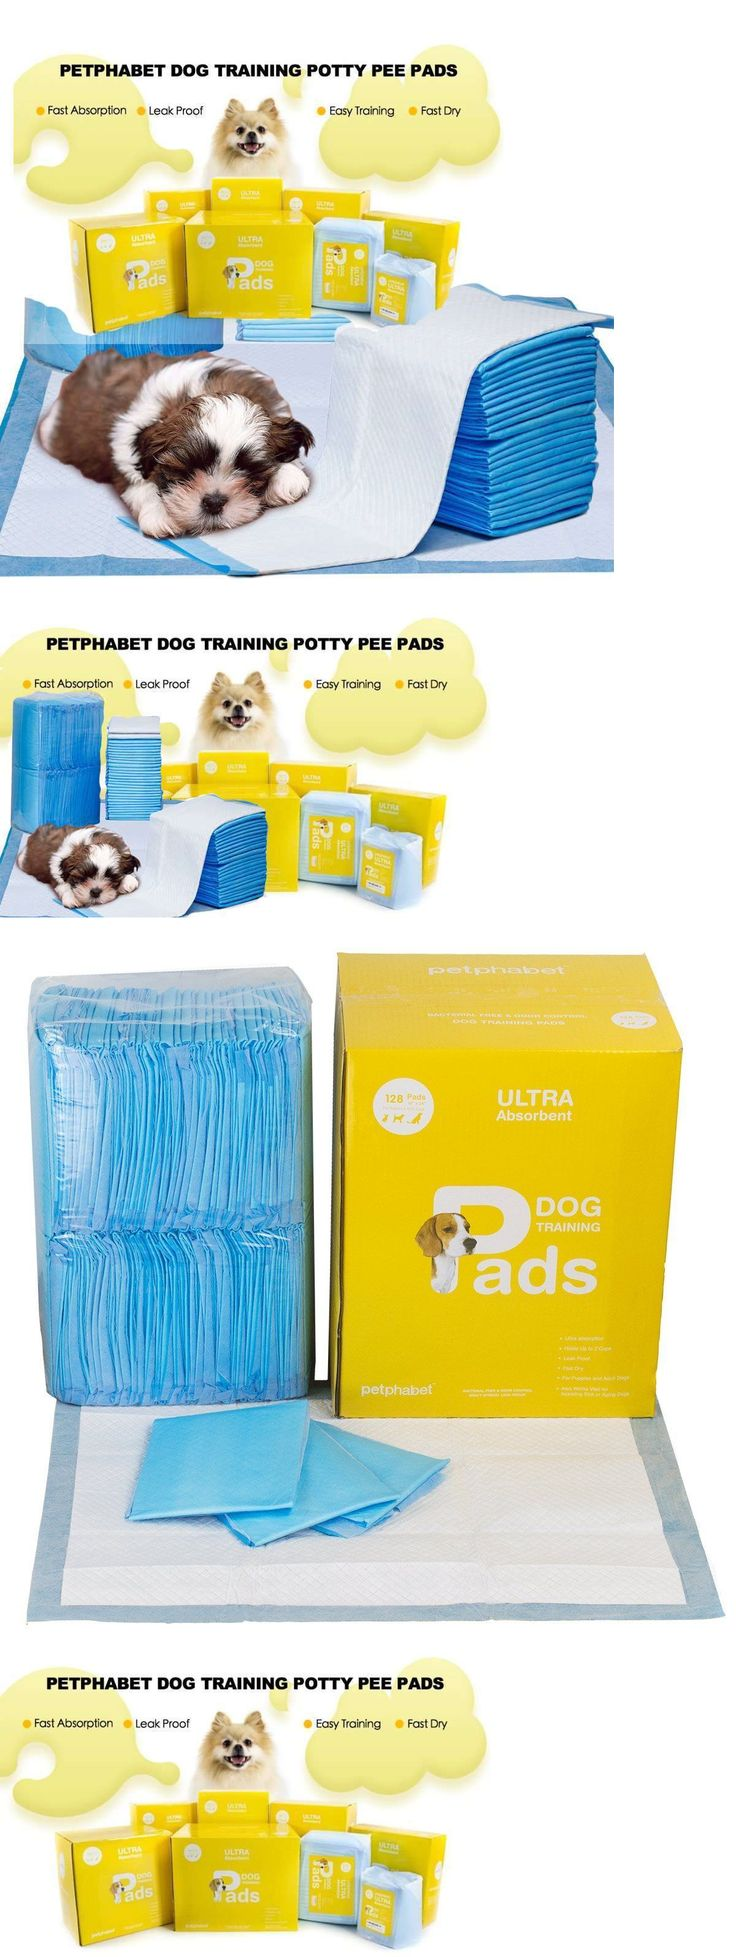 House Training Pads 146243: 128 Dog Puppy Training Pads Housebreaking Wee Wee Potty Indoor Pee Underpads New -> BUY IT NOW ONLY: $37.32 on eBay!